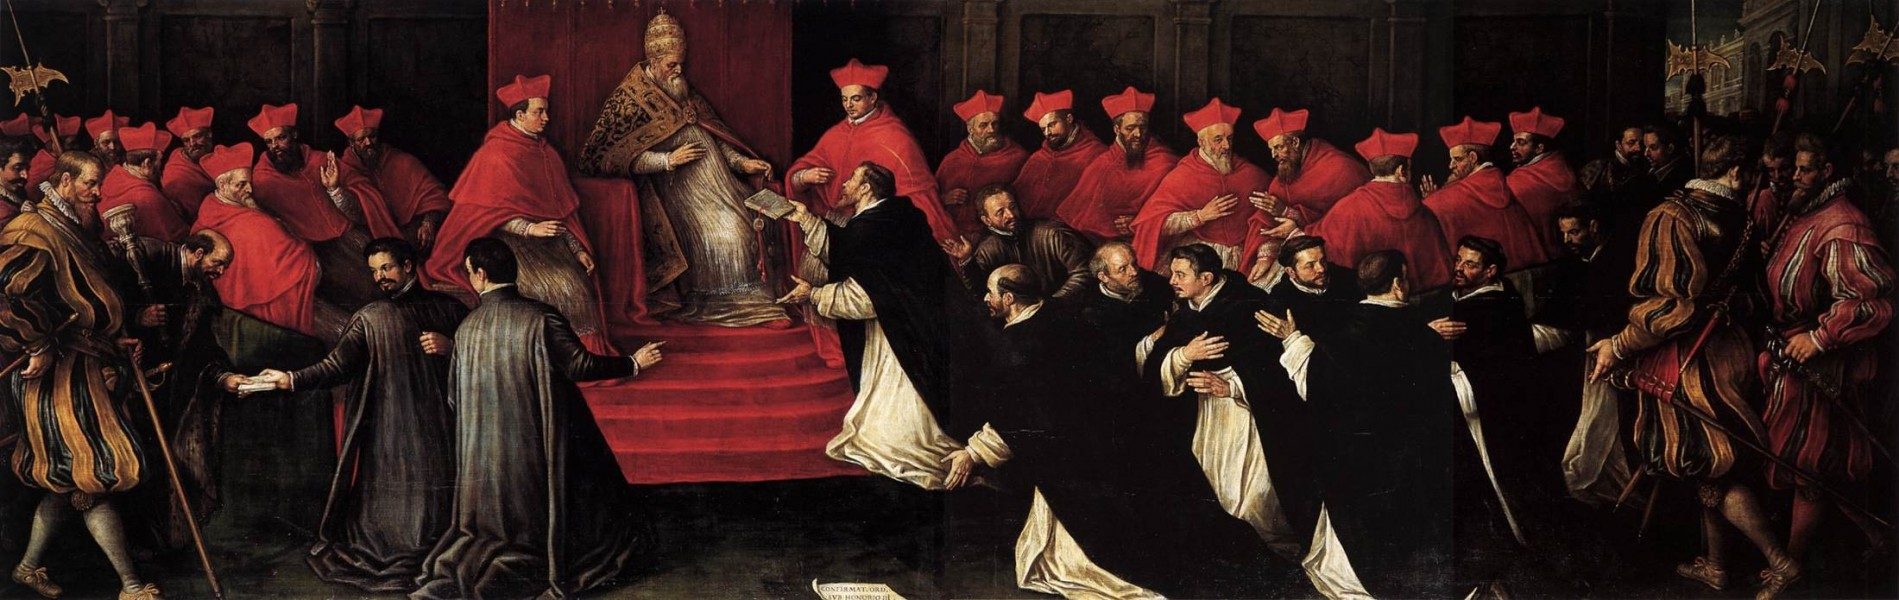 Leandro-Bassano---Honorius-III-Approving-the-Rule-of-St-Dominic-in-1216.jpg